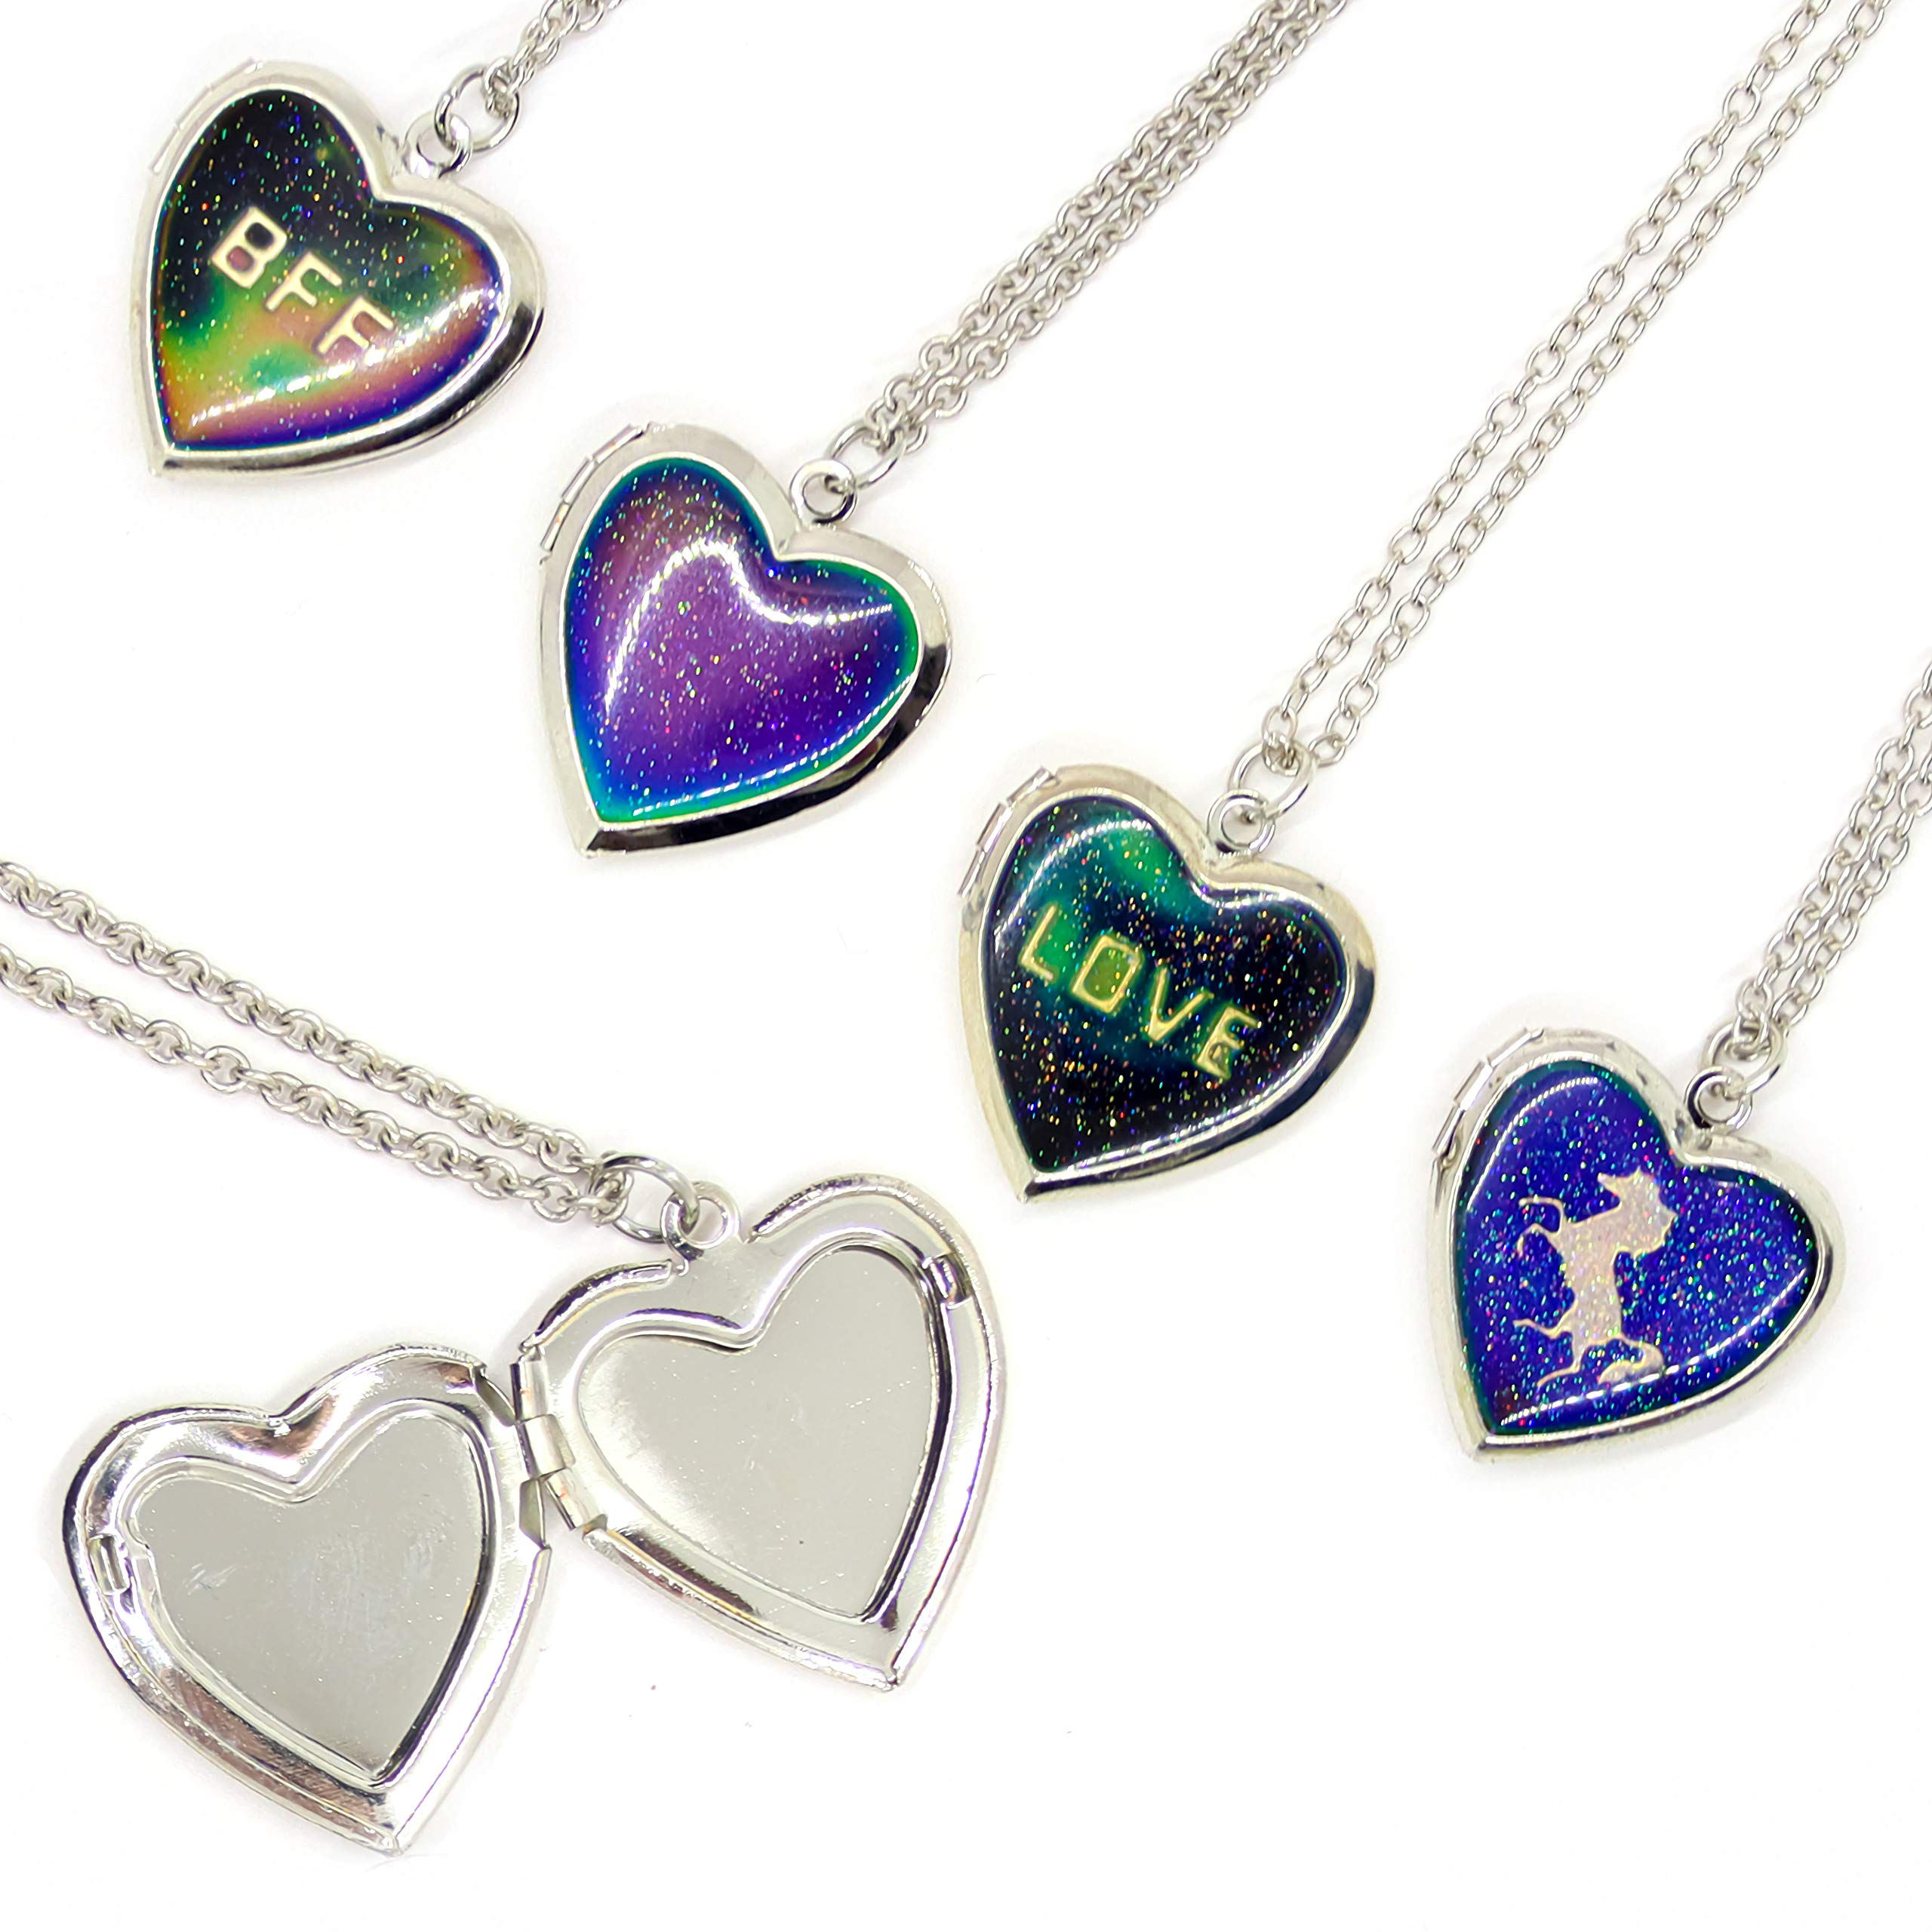 CliPons Mood Charm Necklace for Girls Heart Locket Pendant Letter be Unique be Beautiful be You